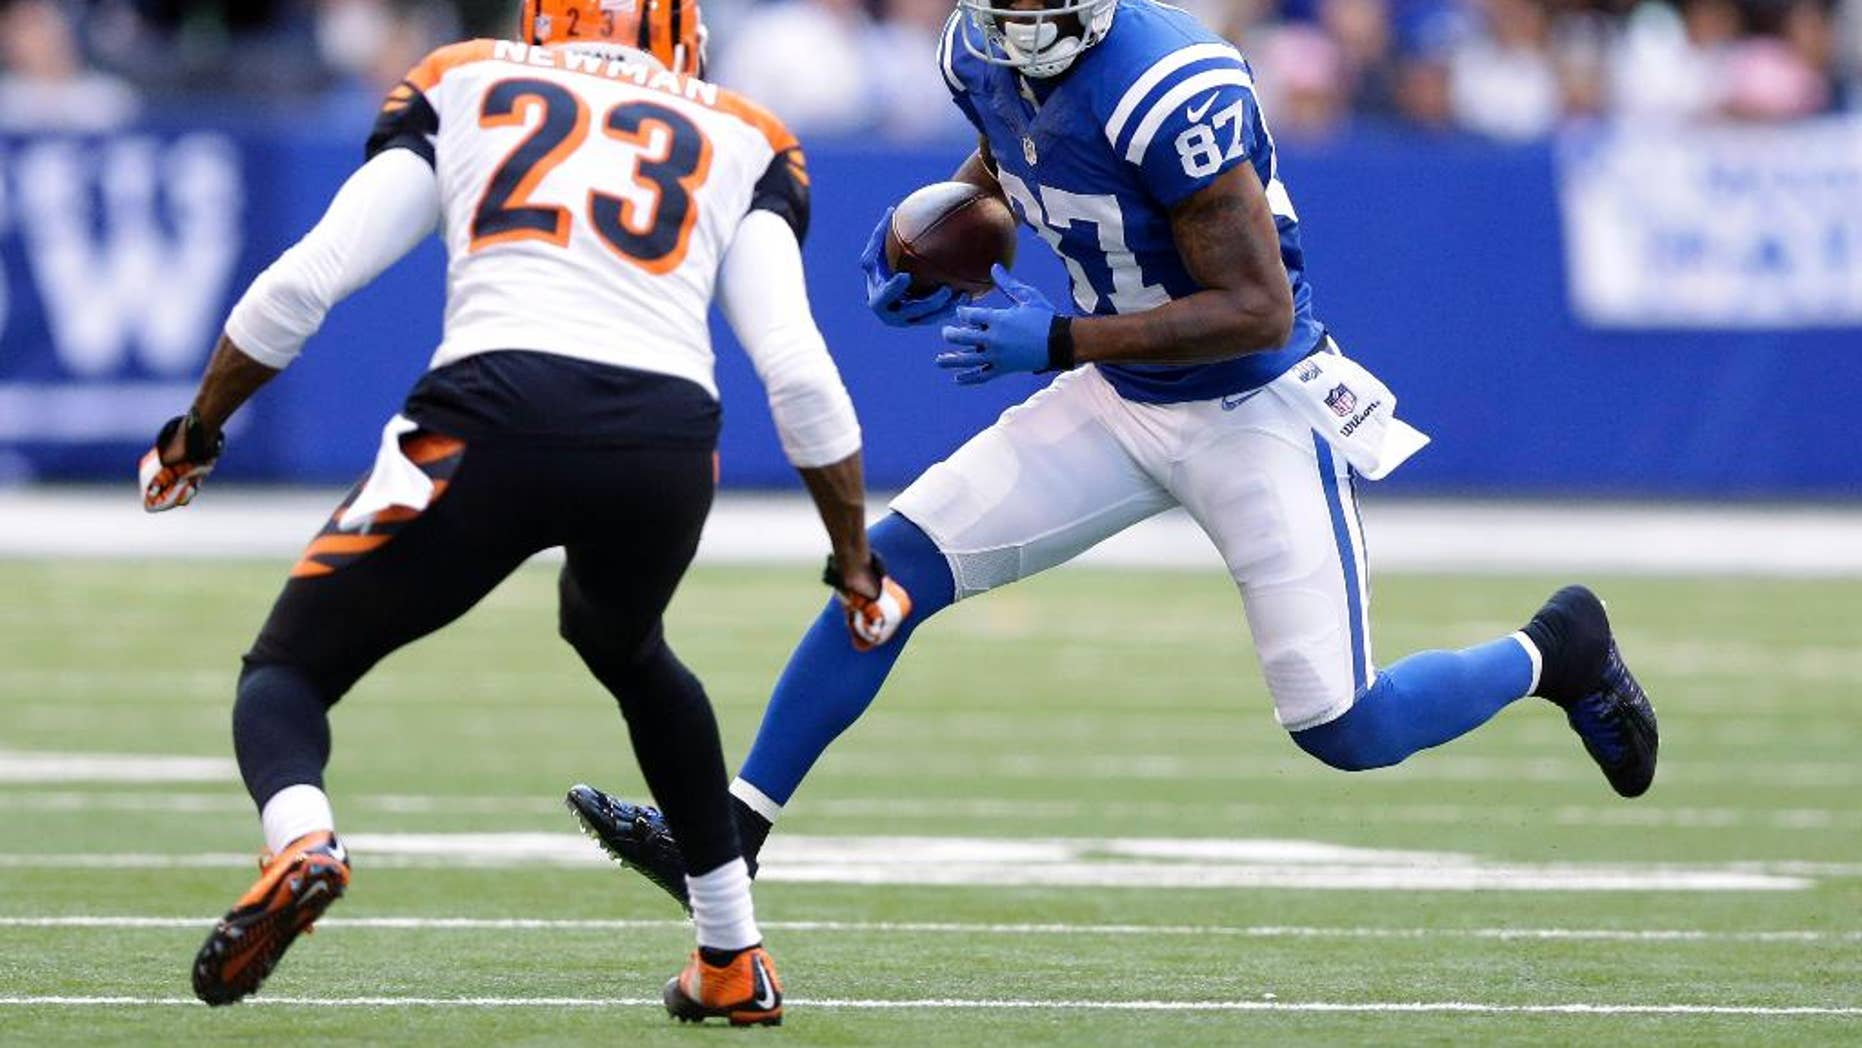 Indianapolis Colts wide receiver Reggie Wayne (87) runs against Cincinnati Bengals cornerback Terence Newman (23) during the second half of an NFL football game Sunday, Oct. 19, 2014, in Indianapolis. (AP Photo/Michael Conroy)